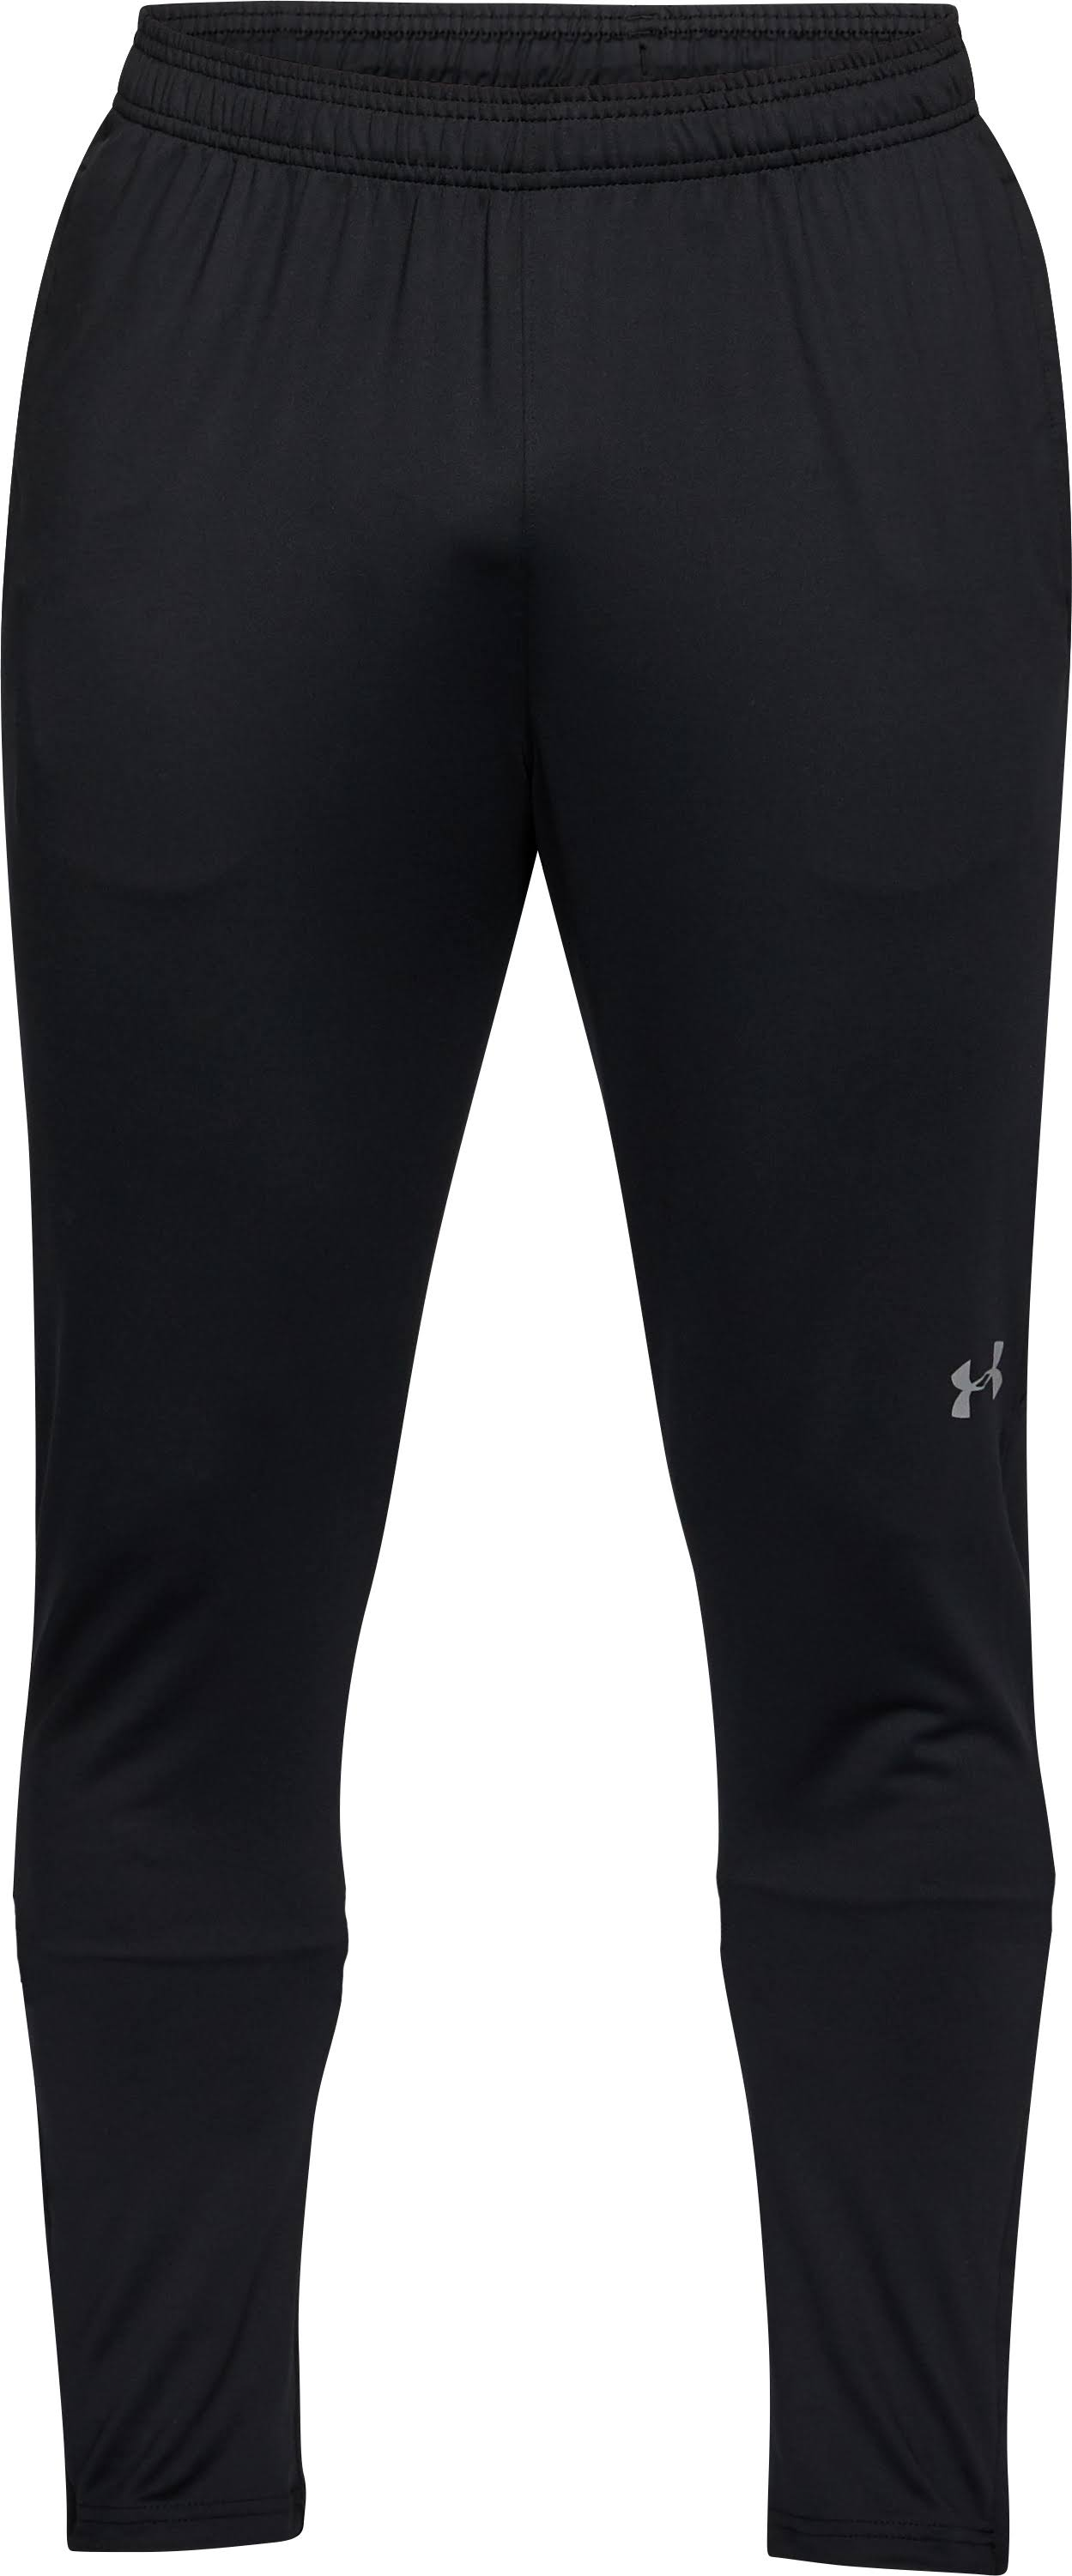 Under Armour Challenger II Training Pant Black  9kyO5pZ